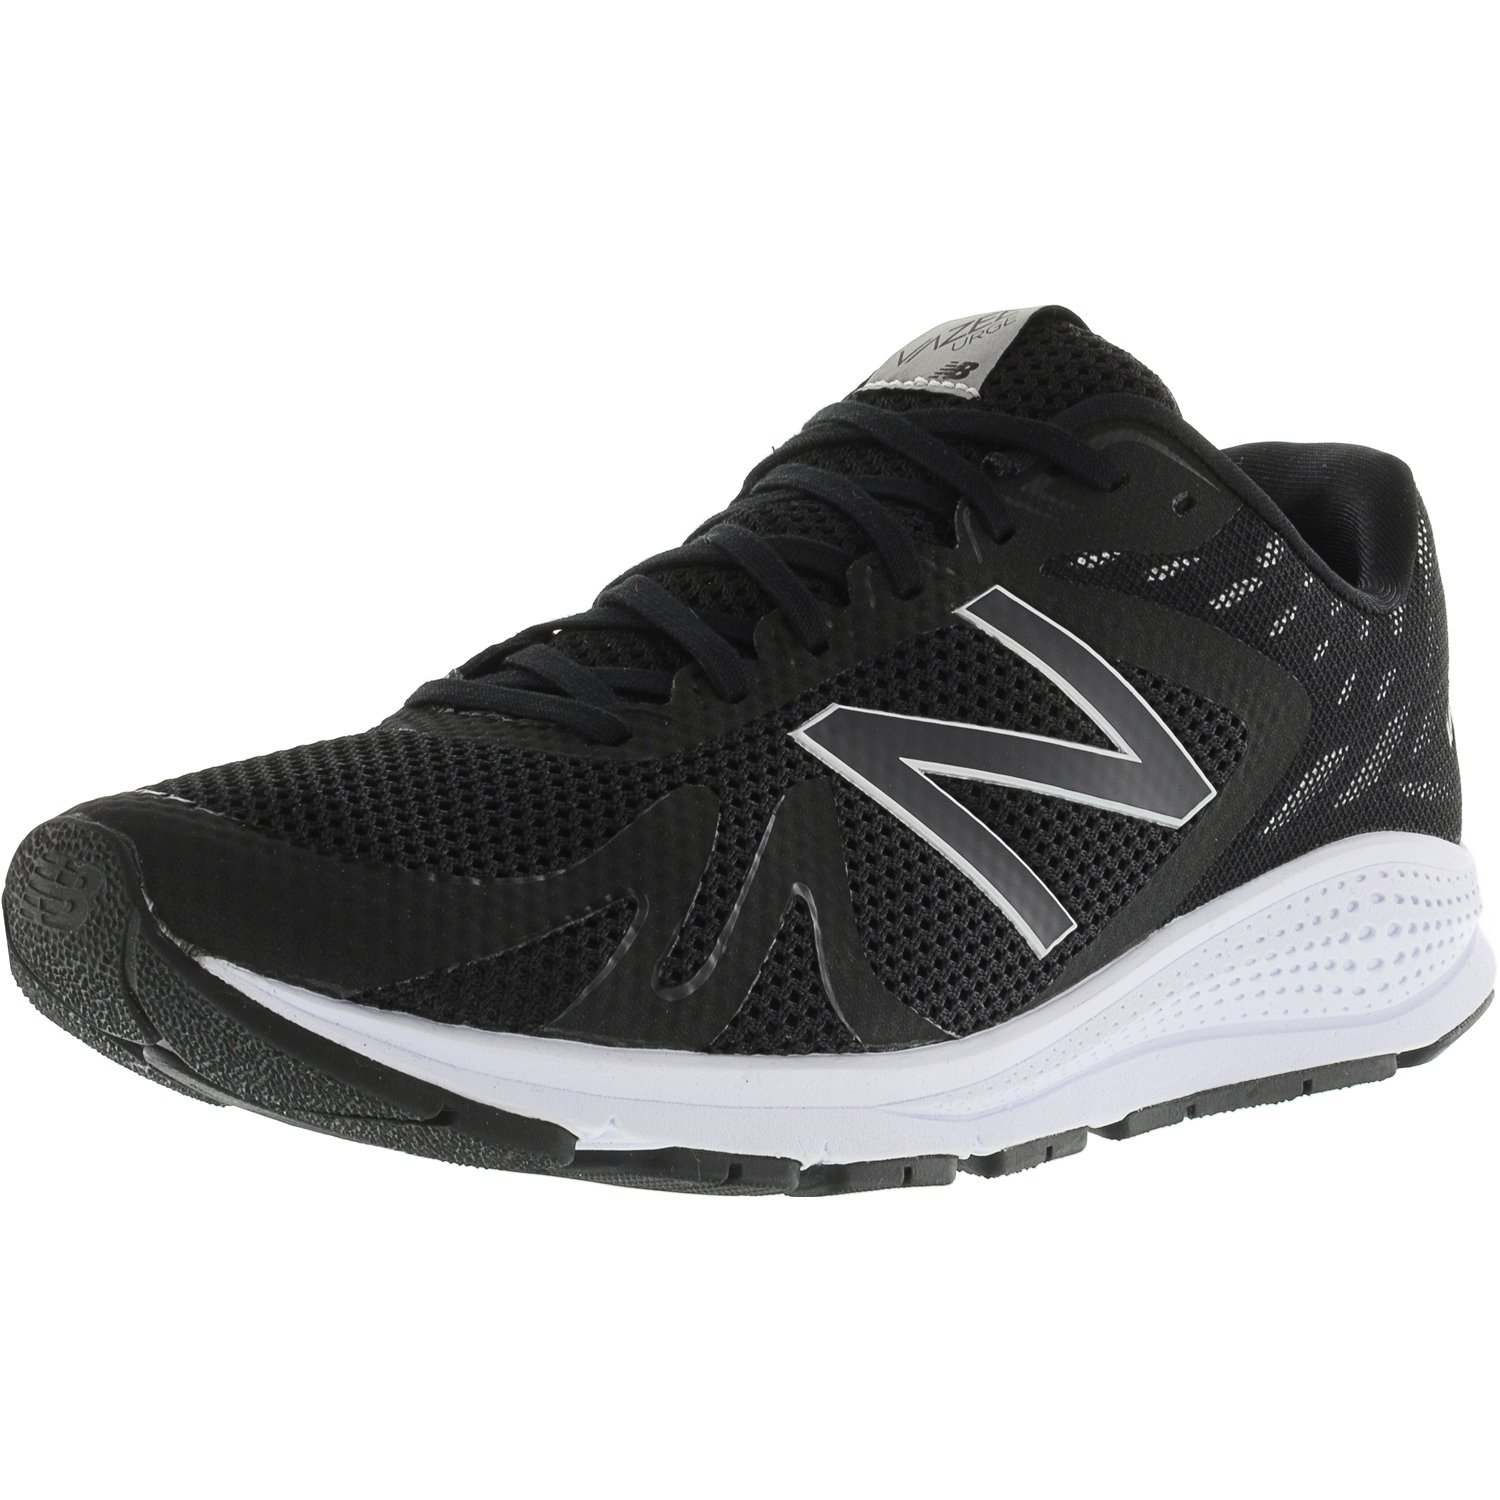 New Balance Women's Wurge Bk Ankle-High Fabric Running Sh...